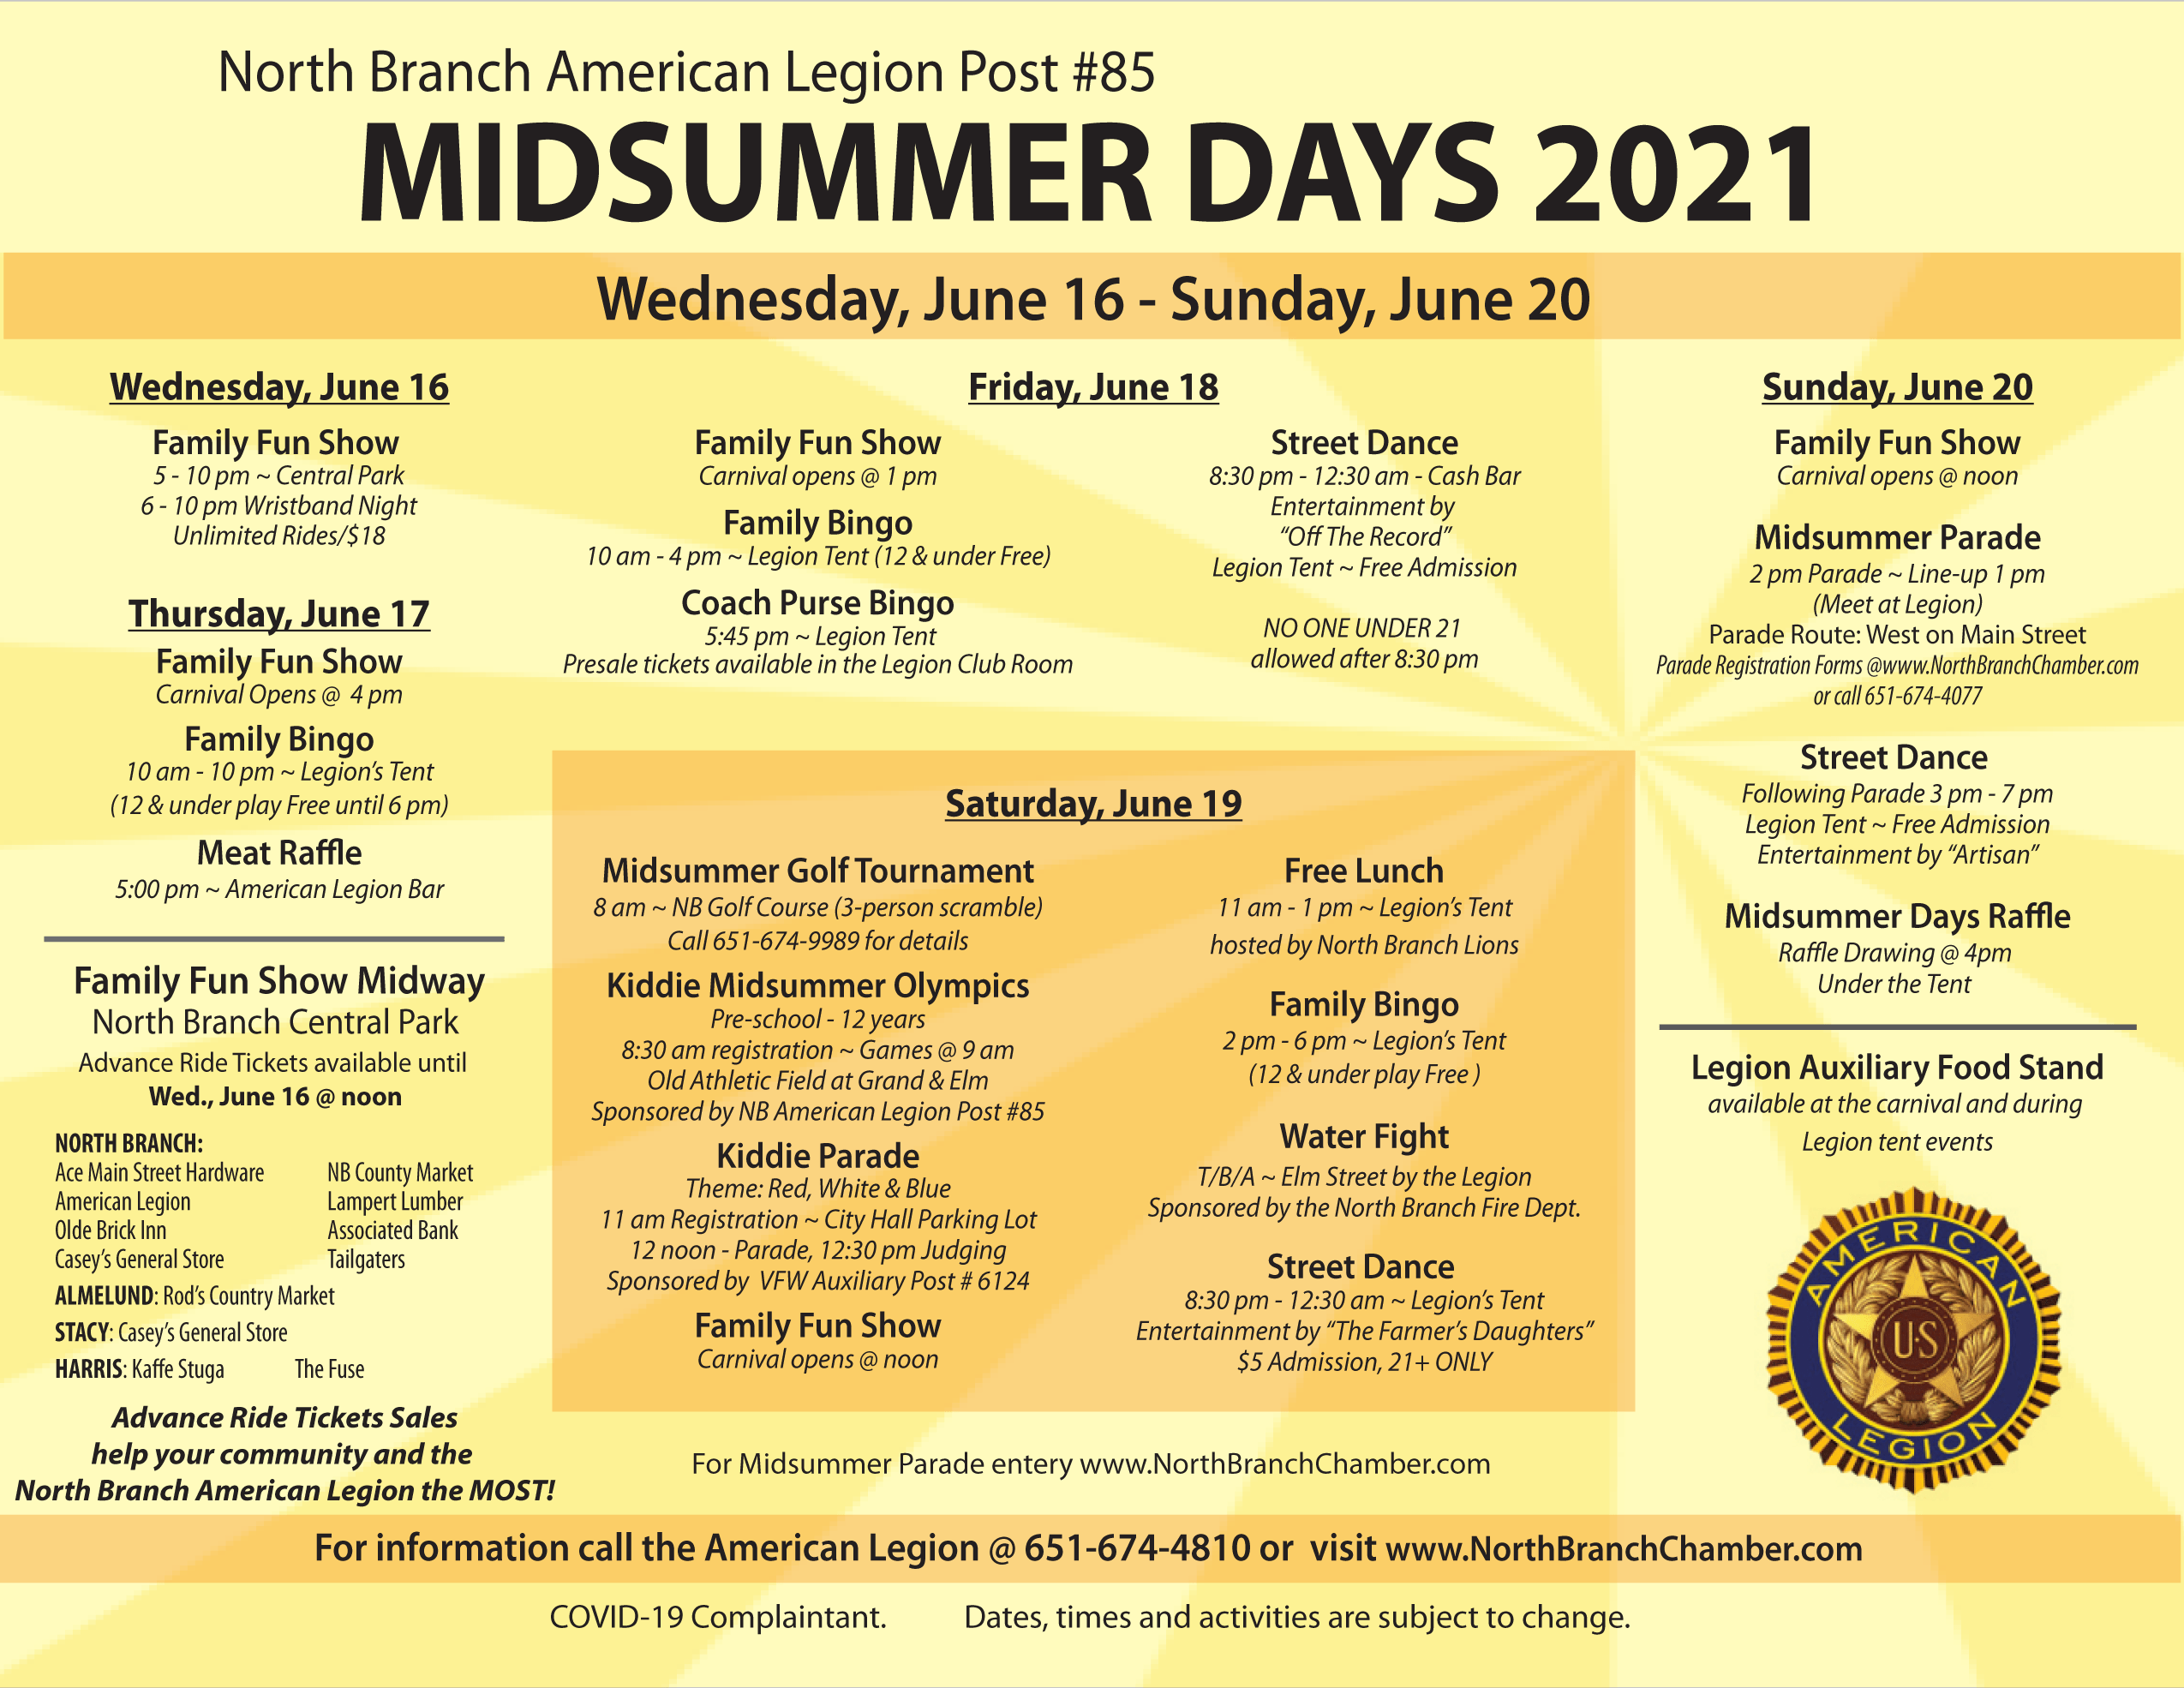 Check out everything you can do at Midsummer Days 2021